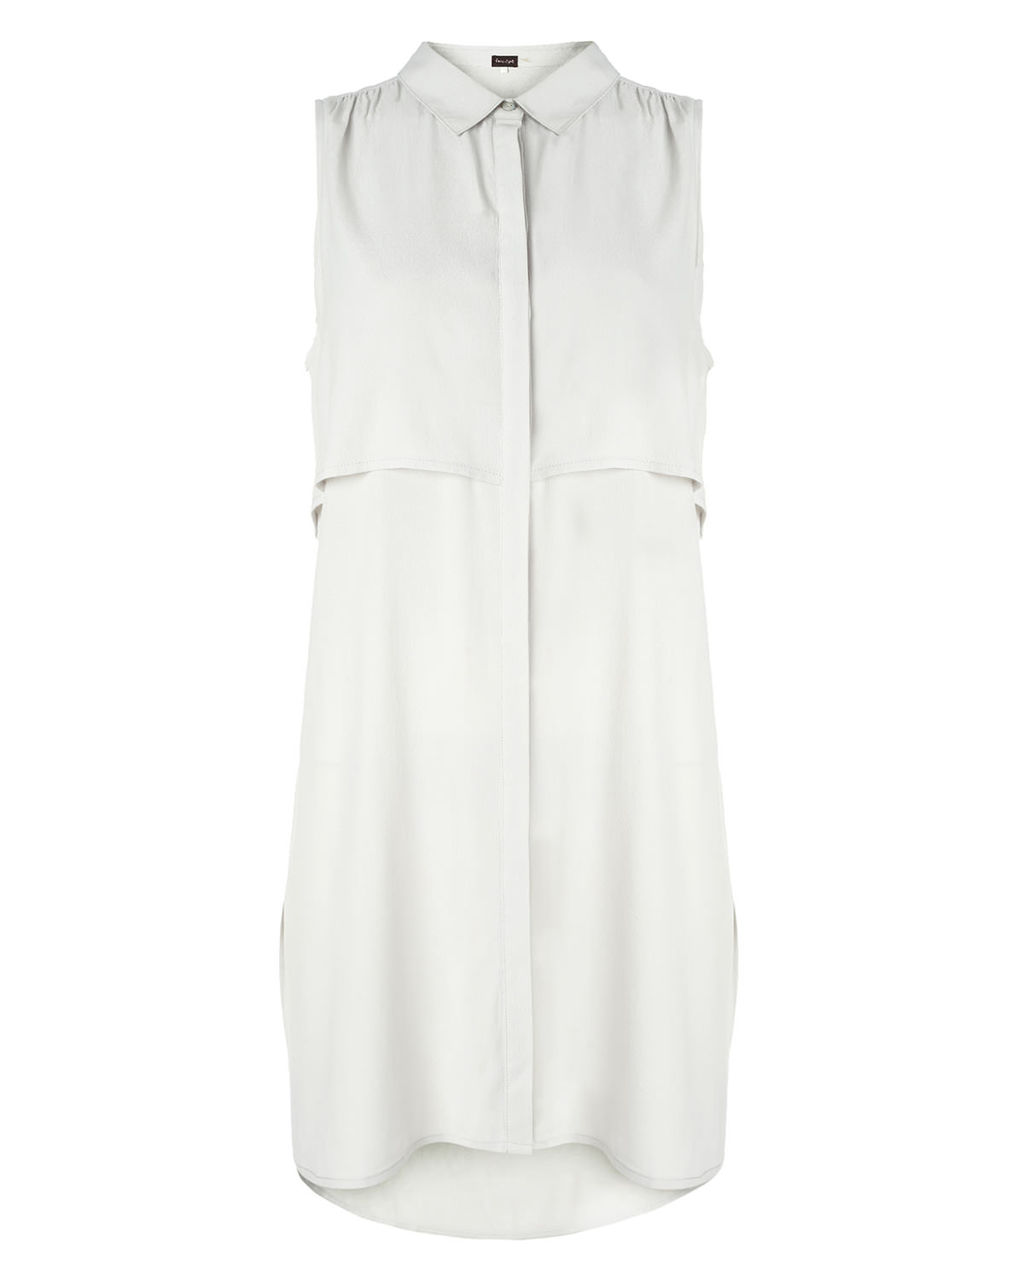 Thomasina Sleeveless Tunic Top - neckline: shirt collar/peter pan/zip with opening; pattern: plain; sleeve style: sleeveless; style: tunic; predominant colour: white; occasions: casual, creative work; fibres: viscose/rayon - 100%; fit: loose; length: mid thigh; sleeve length: sleeveless; pattern type: fabric; texture group: other - light to midweight; season: s/s 2015